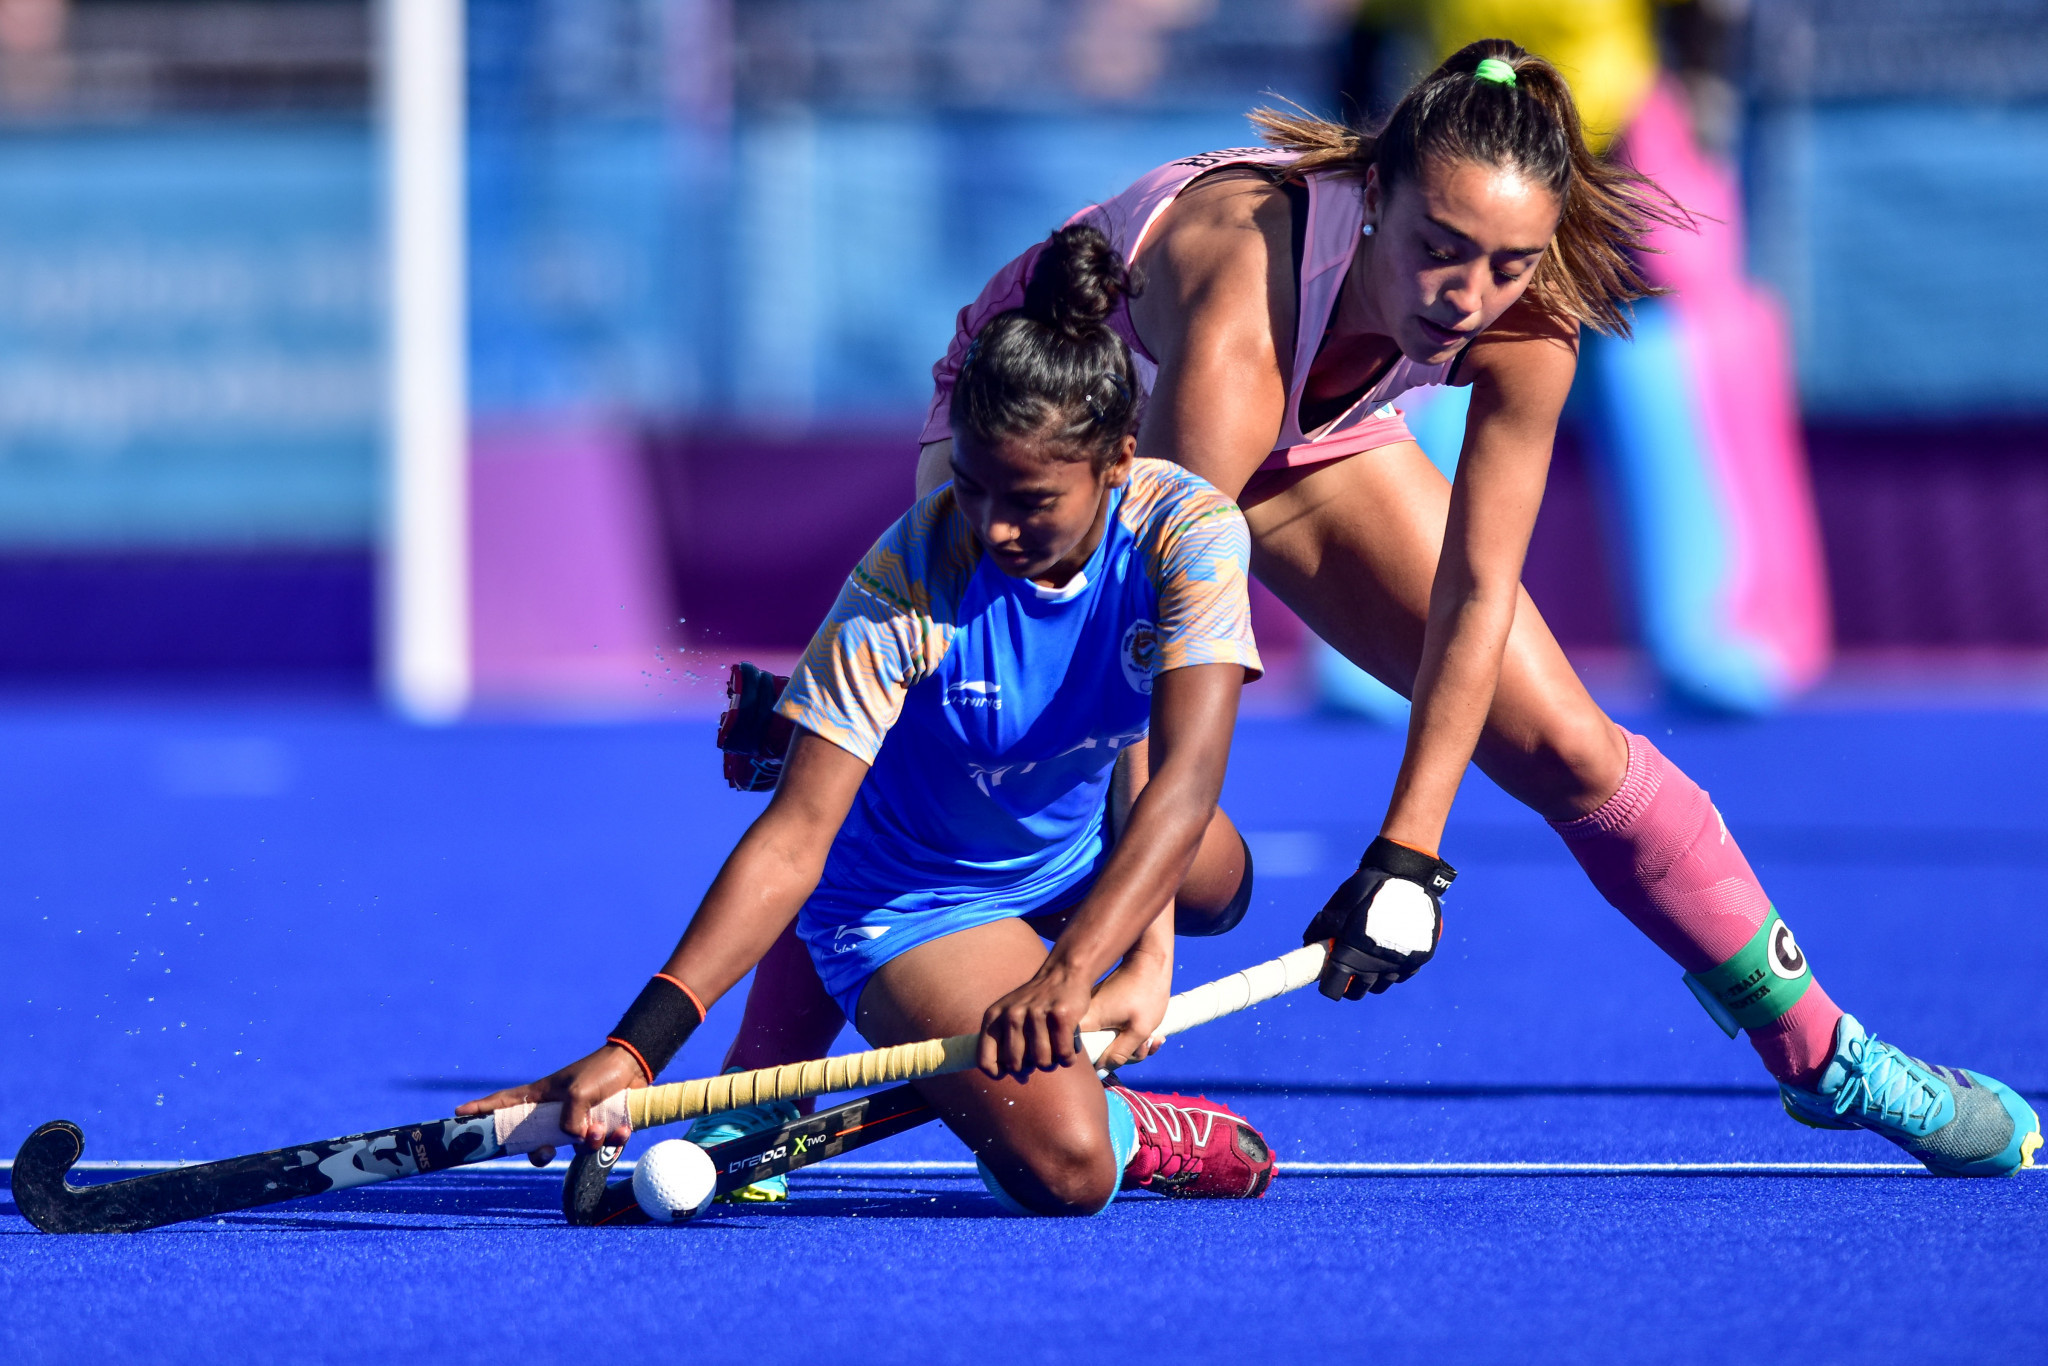 Argentina won the women's hockey 5s title at the 2018 Youth Olympic Games in Buenos Aires ©Getty Images